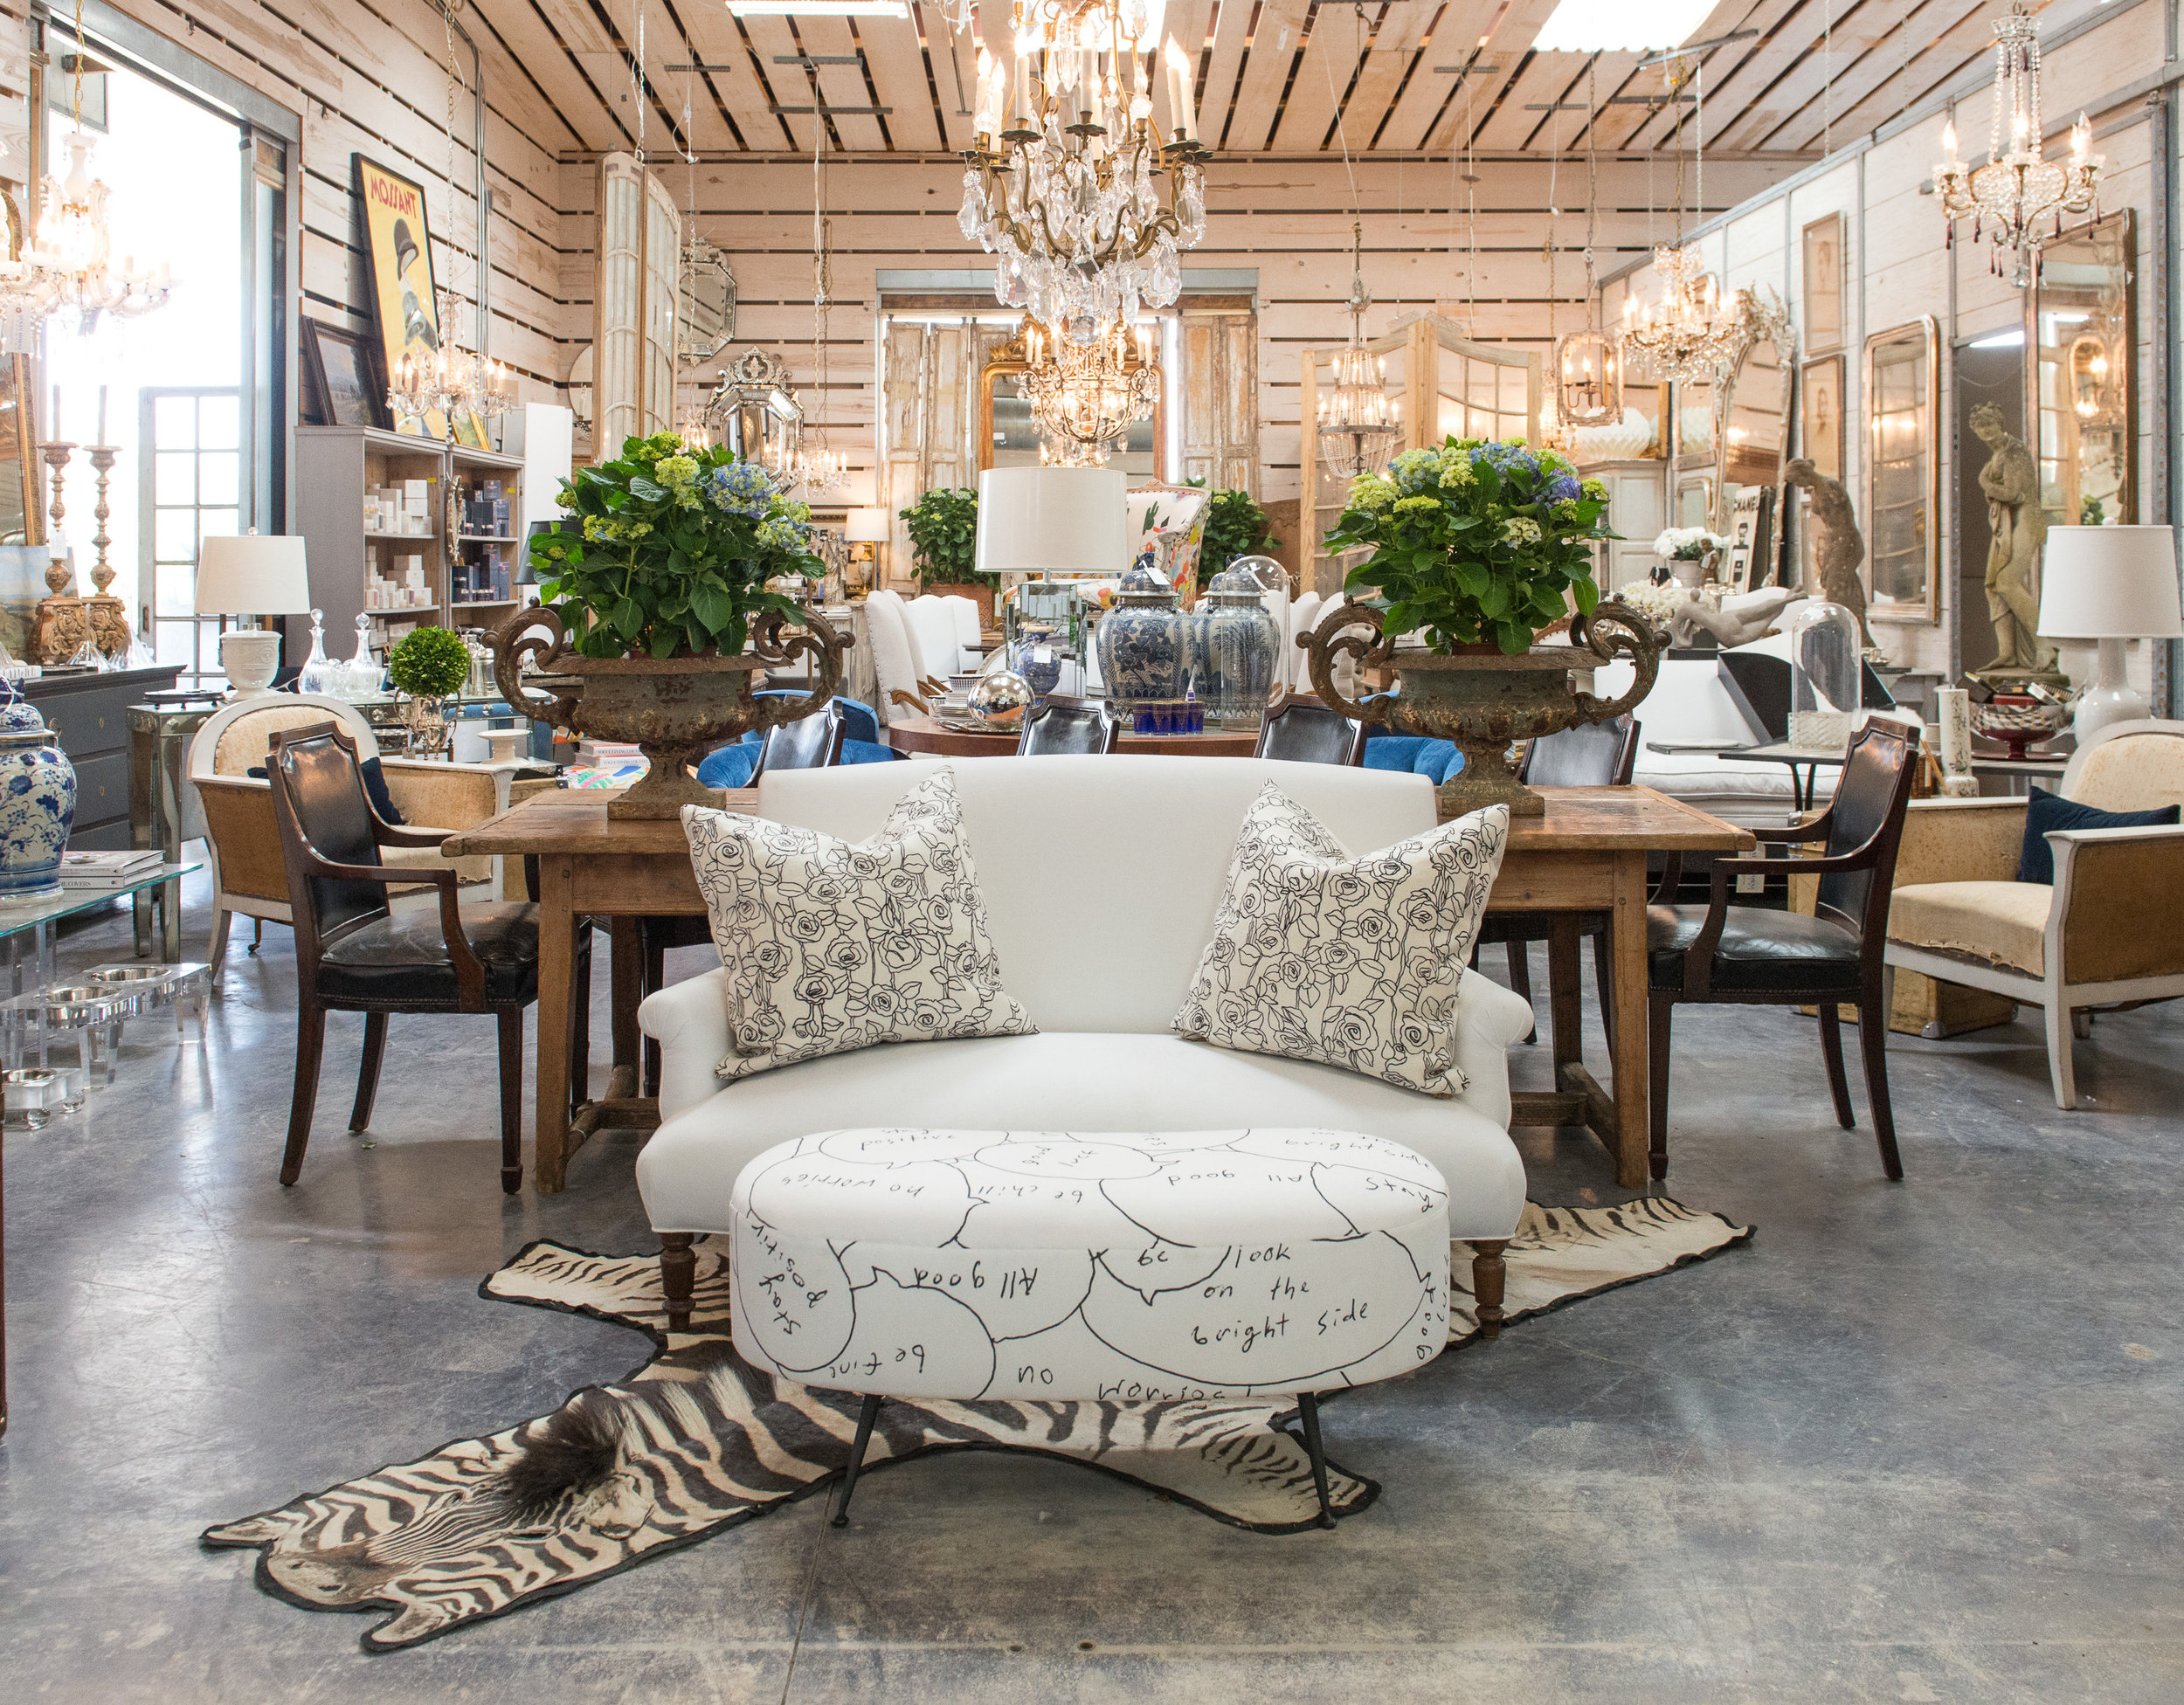 Photo by Natalie Lacy Lange and courtesy of Susan Horne Antiques